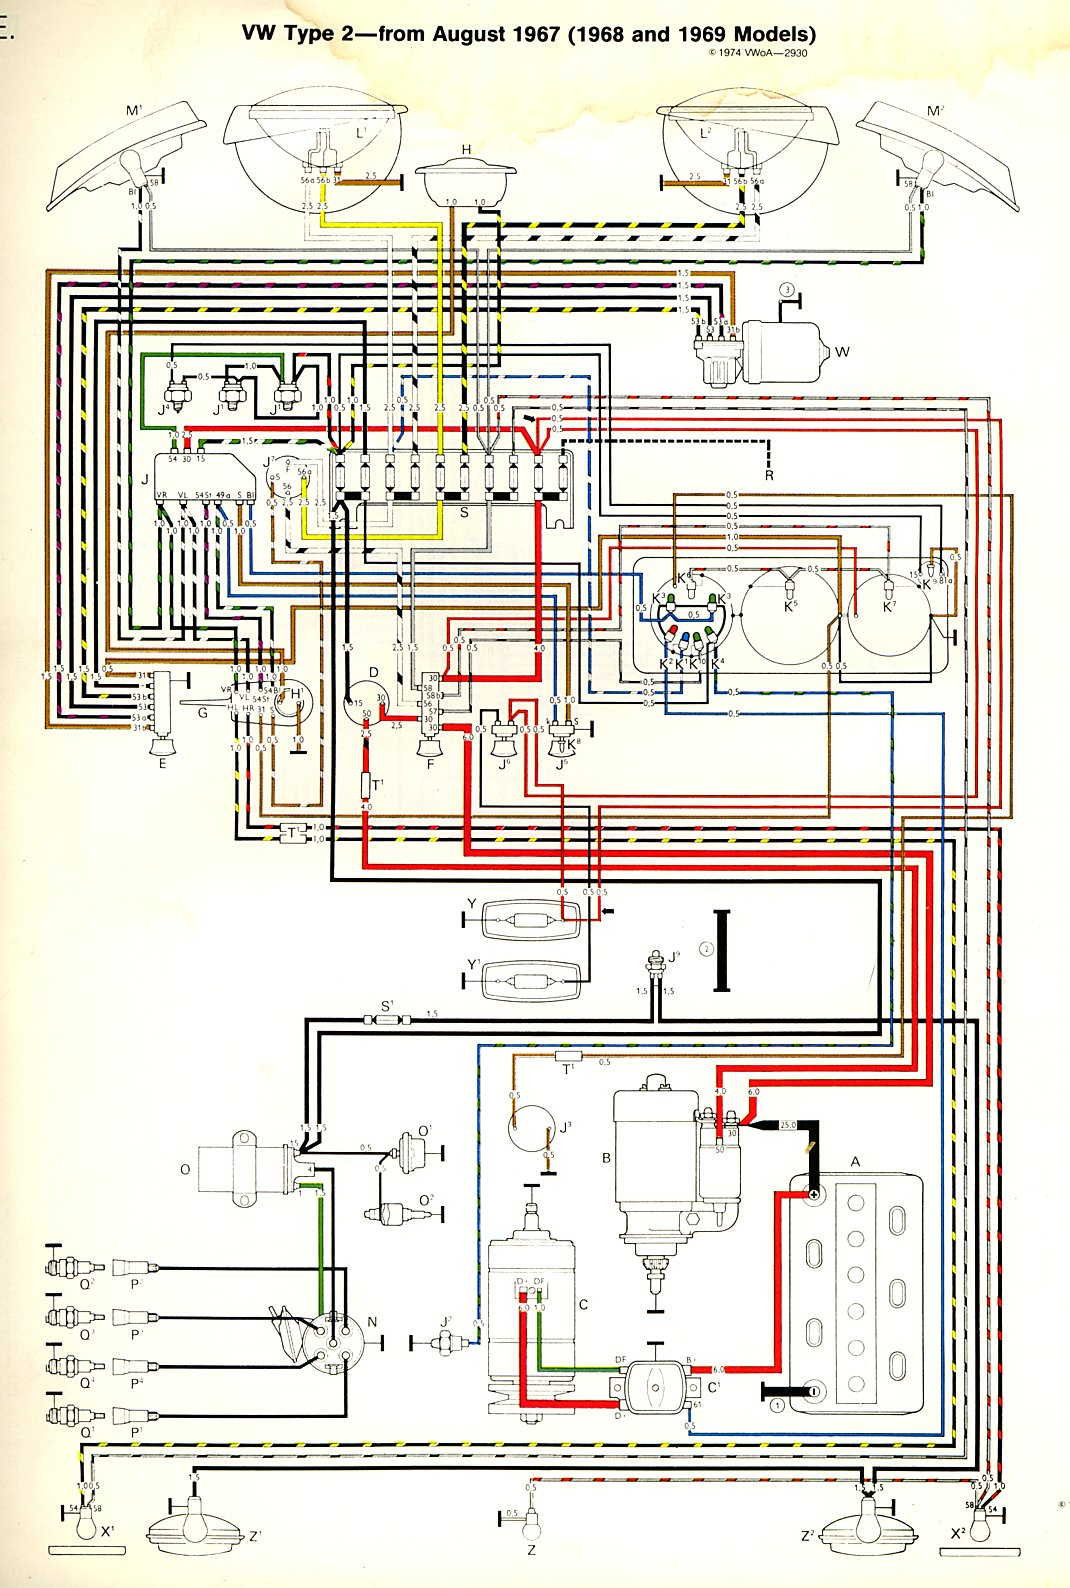 baybus_6869a bus wiring diagram vw wiring harness diagram \u2022 wiring diagrams j Toyota Corolla Wiring Harness Diagram at cos-gaming.co